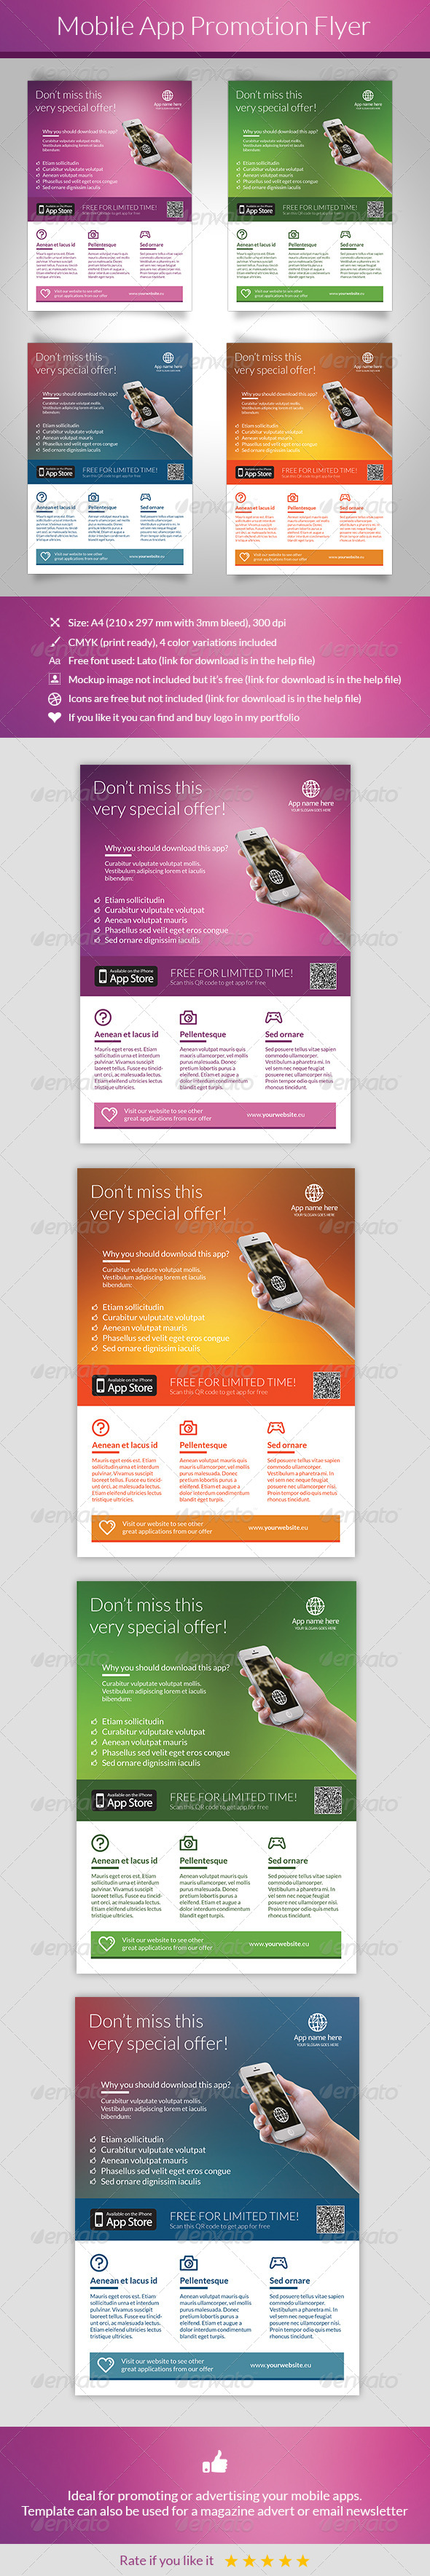 GraphicRiver Mobile App Promotion Flyer 5390038